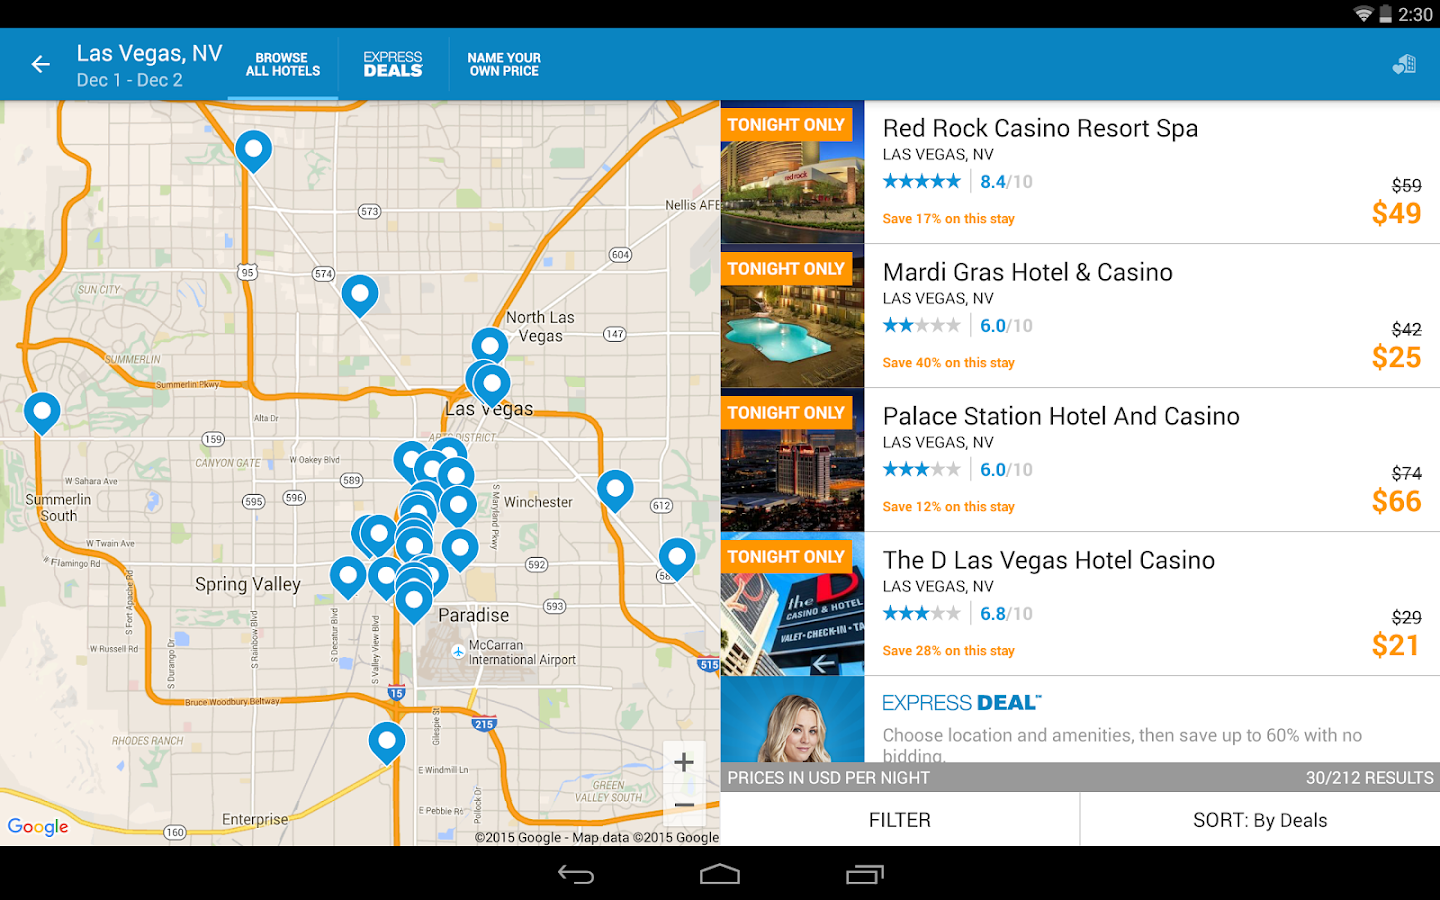 Priceline Hotel Flight  Car  Android Apps on Google Play